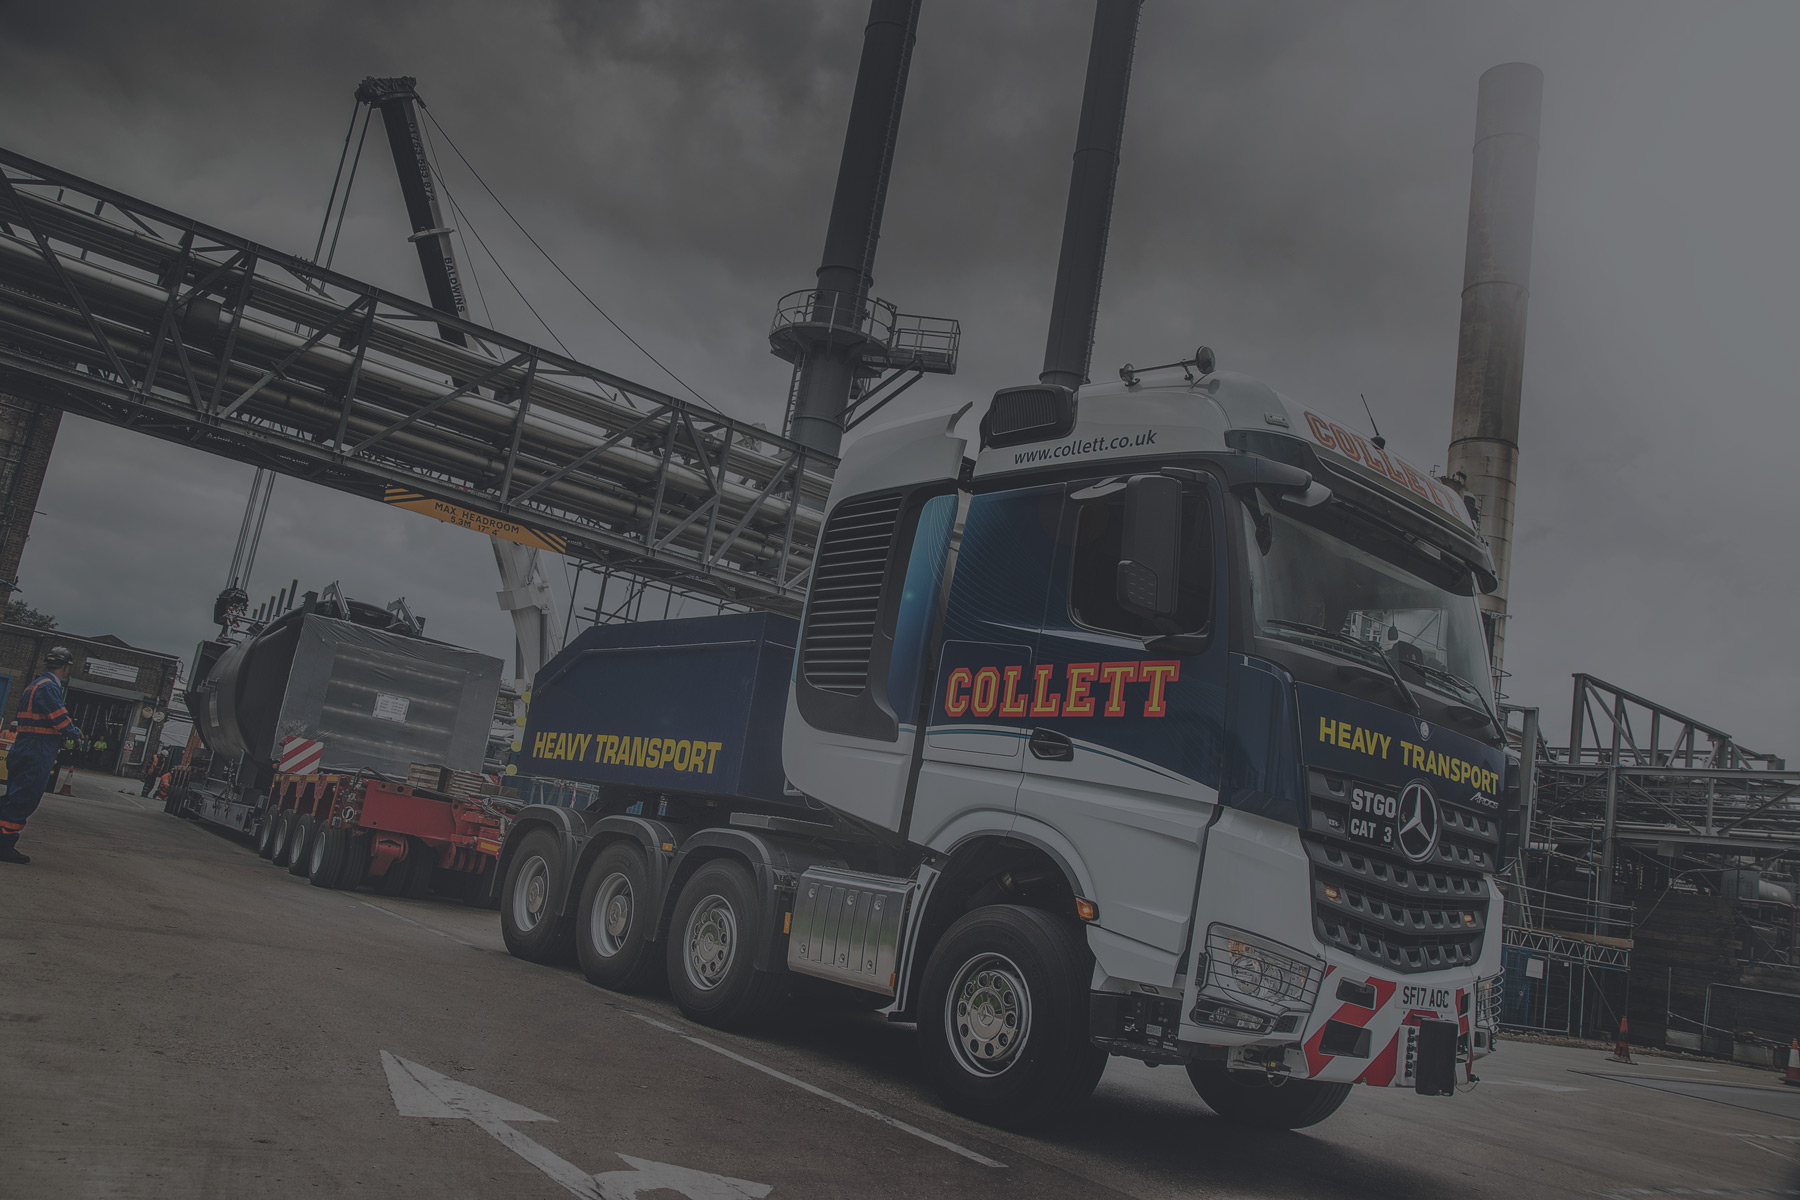 Collett & Sons Heavy Transport